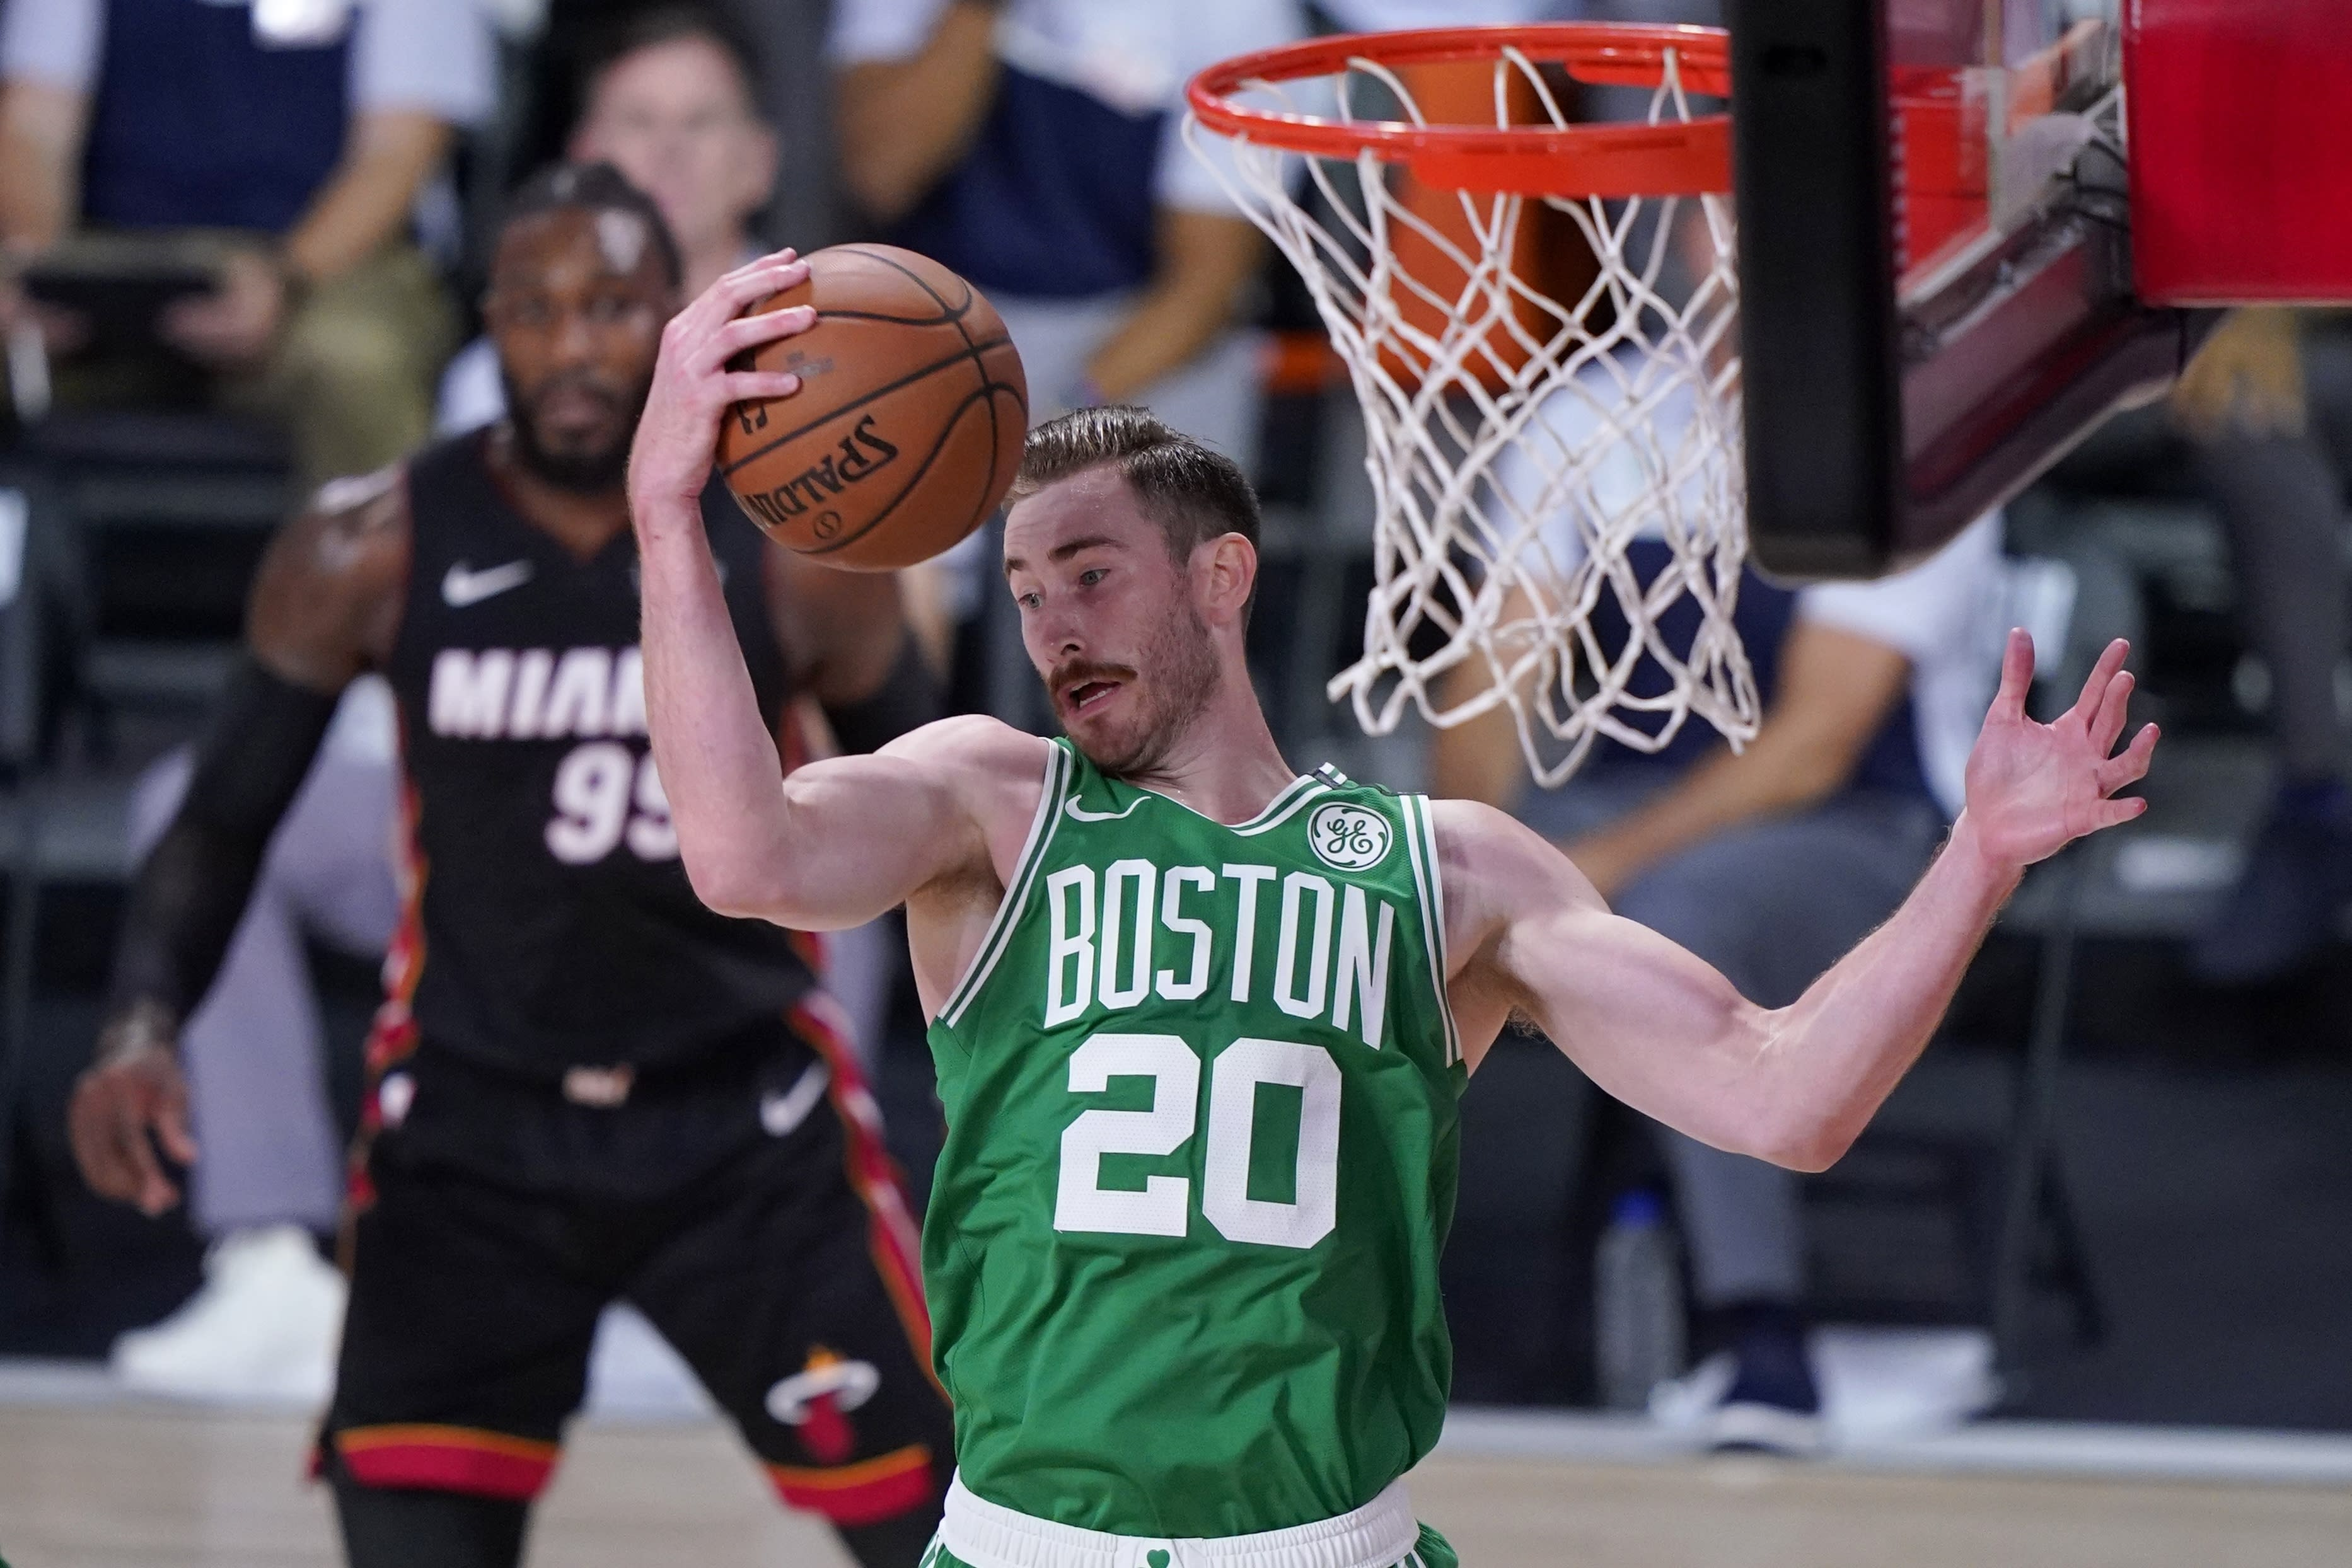 Boston Celtics forward Gordon Hayward (20) comes down with a rebound during the first half of an NBA conference final playoff basketball game against the Miami Heat on Saturday, Sept. 19, 2020, in Lake Buena Vista, Fla. (AP Photo/Mark J. Terrill)